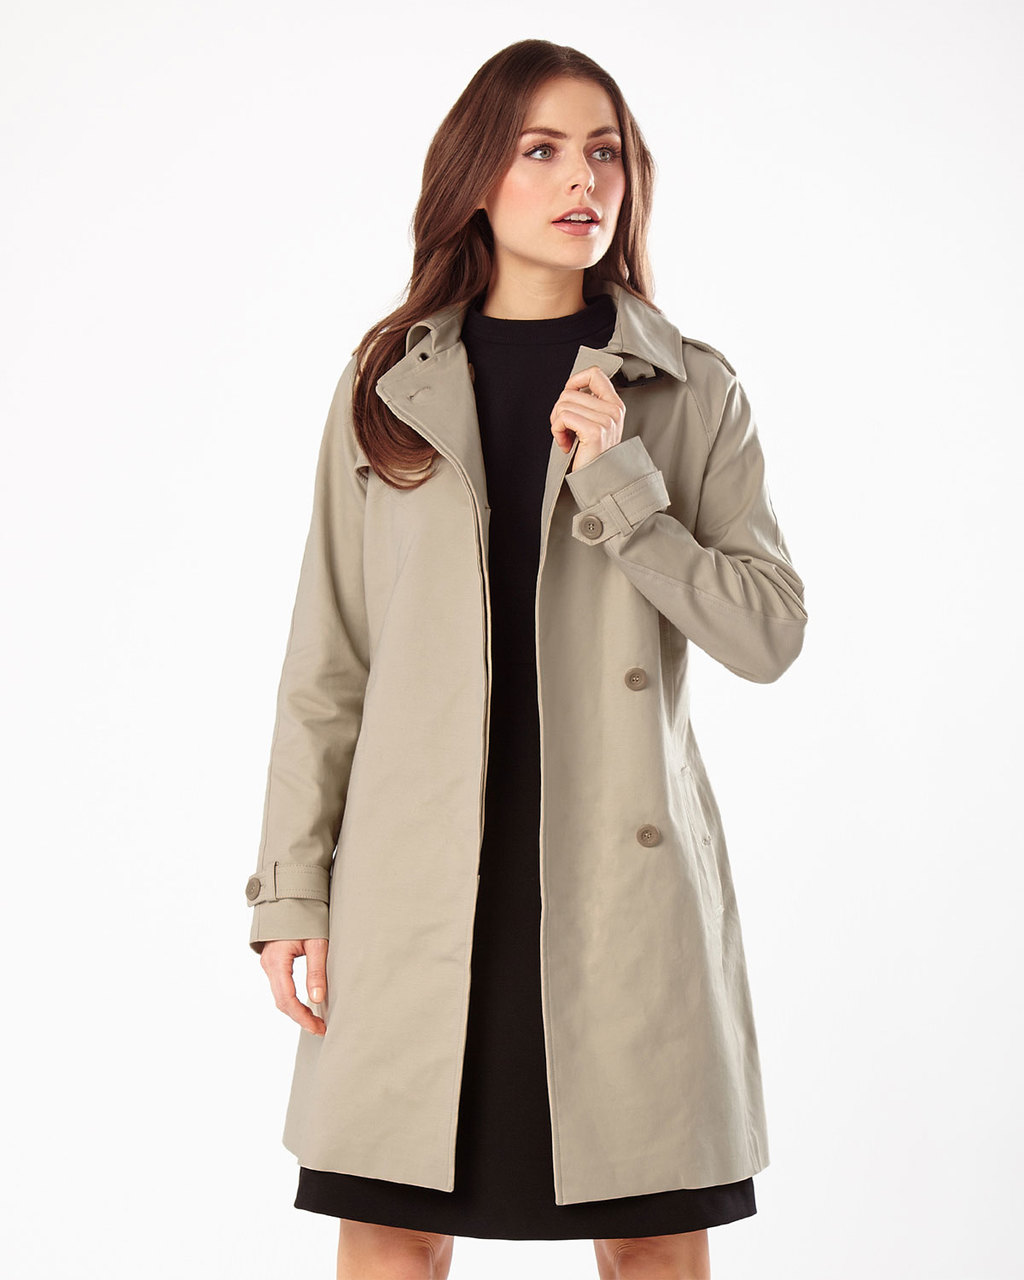 Dulce Trench Coat - pattern: plain; style: trench coat; length: mid thigh; predominant colour: stone; occasions: work; fit: tailored/fitted; fibres: cotton - mix; collar: shirt collar/peter pan/zip with opening; sleeve length: long sleeve; sleeve style: standard; texture group: technical outdoor fabrics; collar break: high; pattern type: fabric; season: s/s 2016; wardrobe: highlight